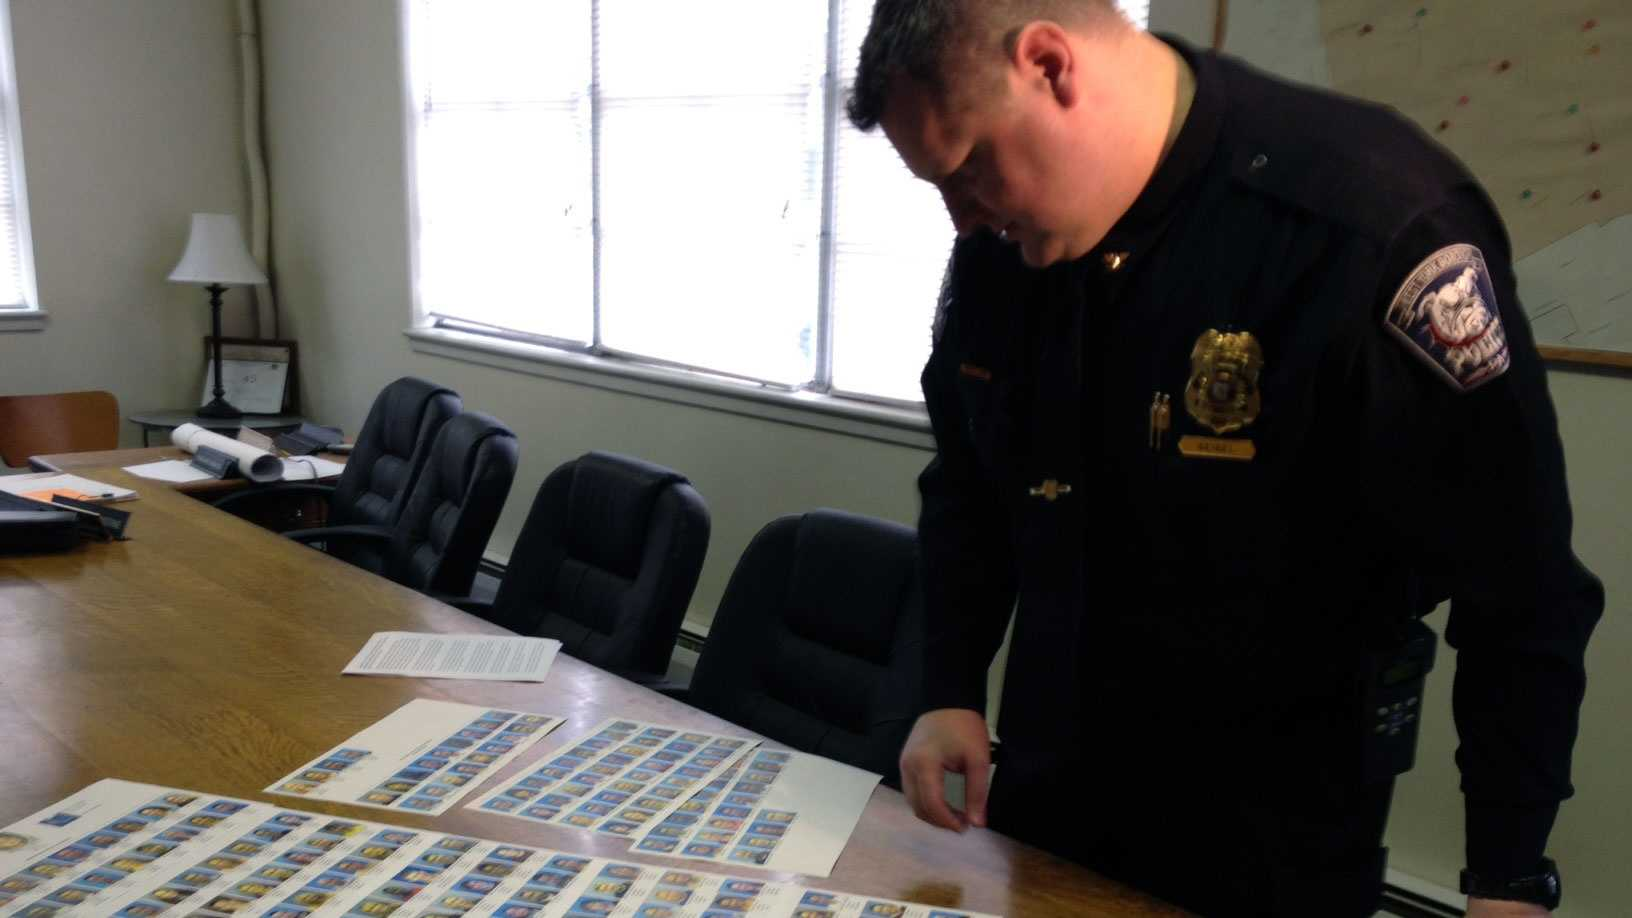 The West York police chief looks at photos of the retail theft suspects.